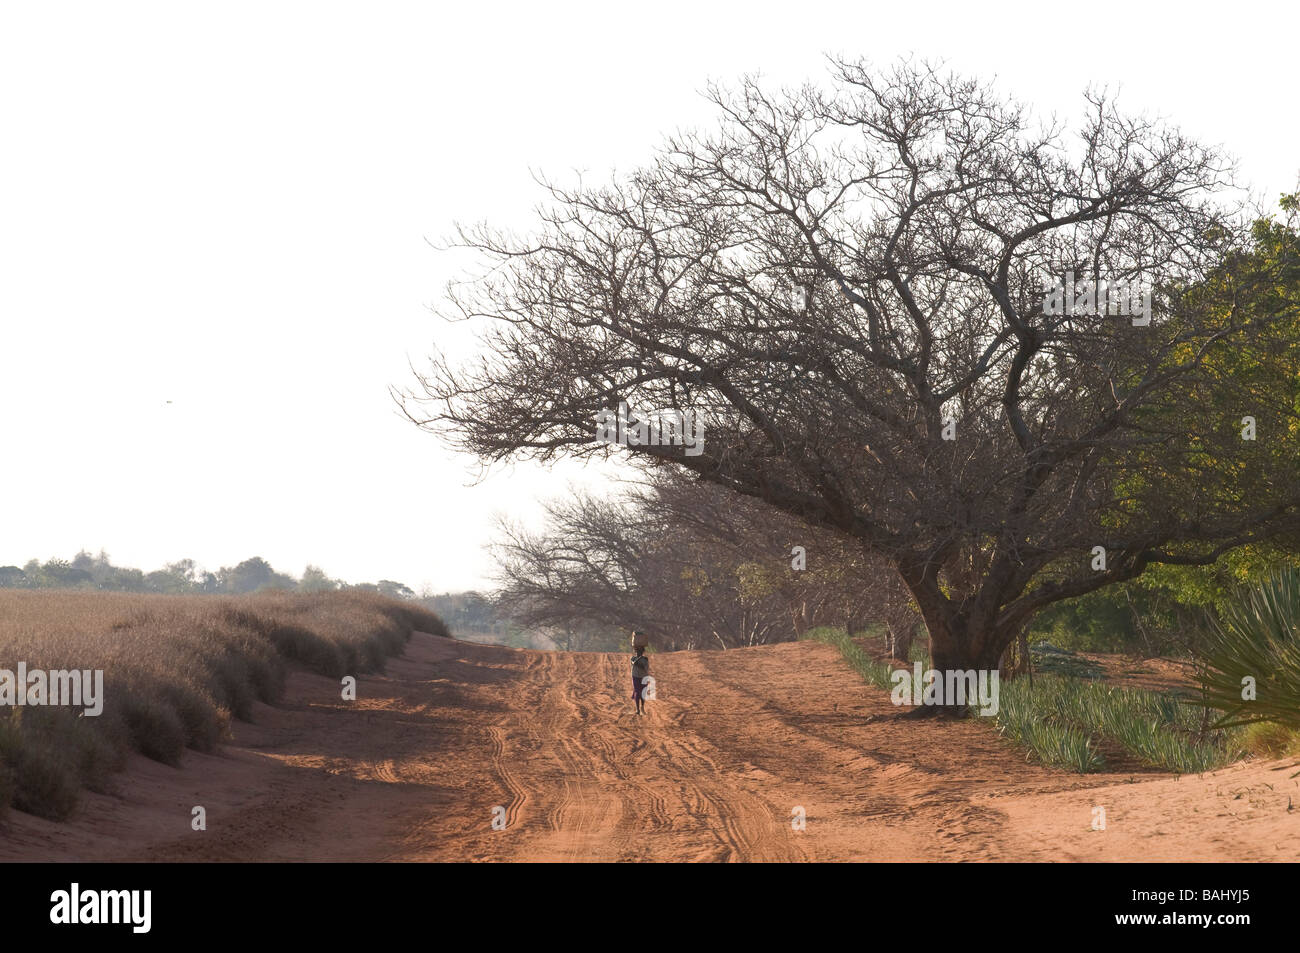 Woman on their way home Berenty Private Reserve Madgascar Africa - Stock Image